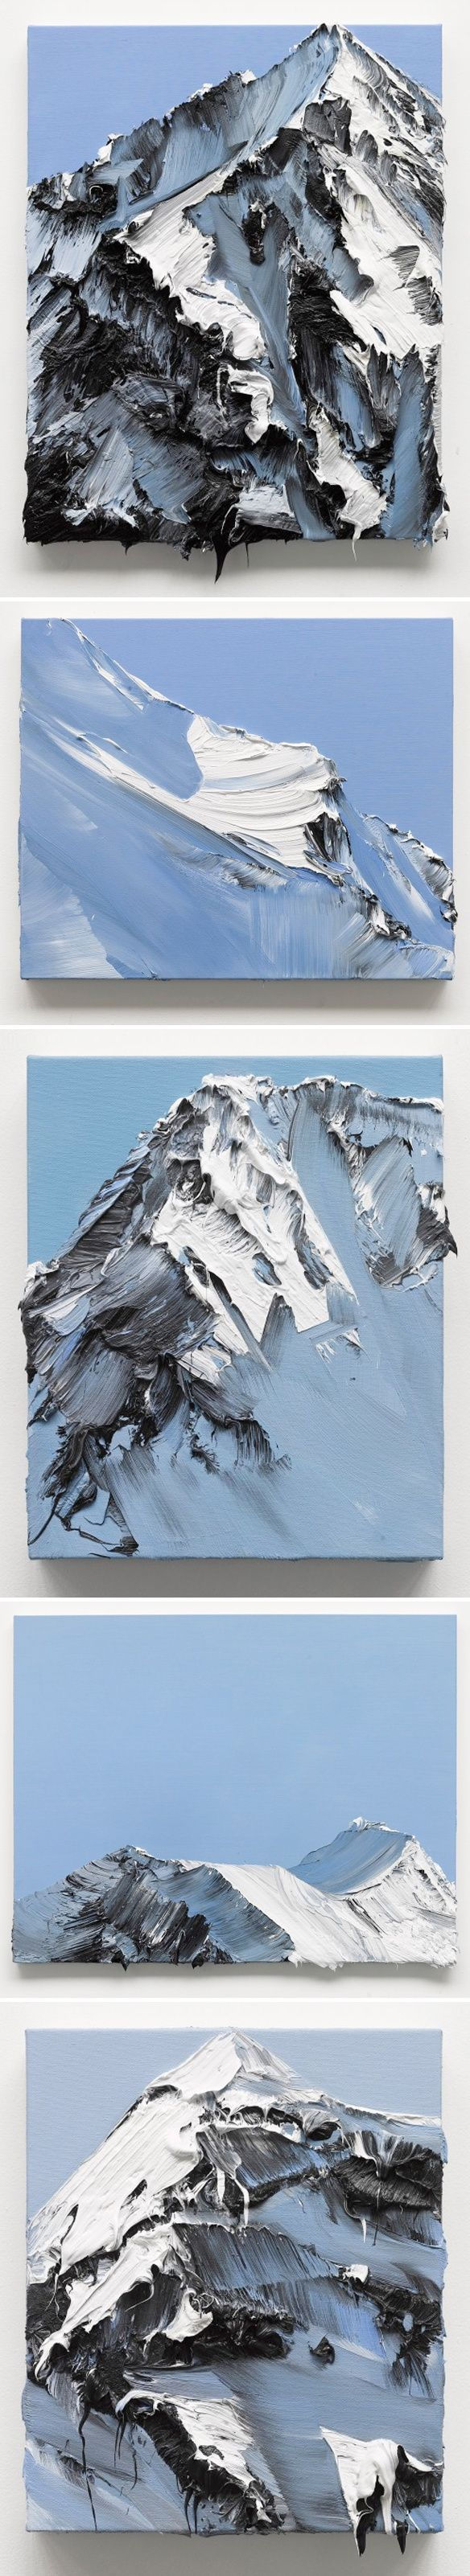 Amazing acrylic mountain paintings, that dripping effect too :O                                                                                                                                                                                 More